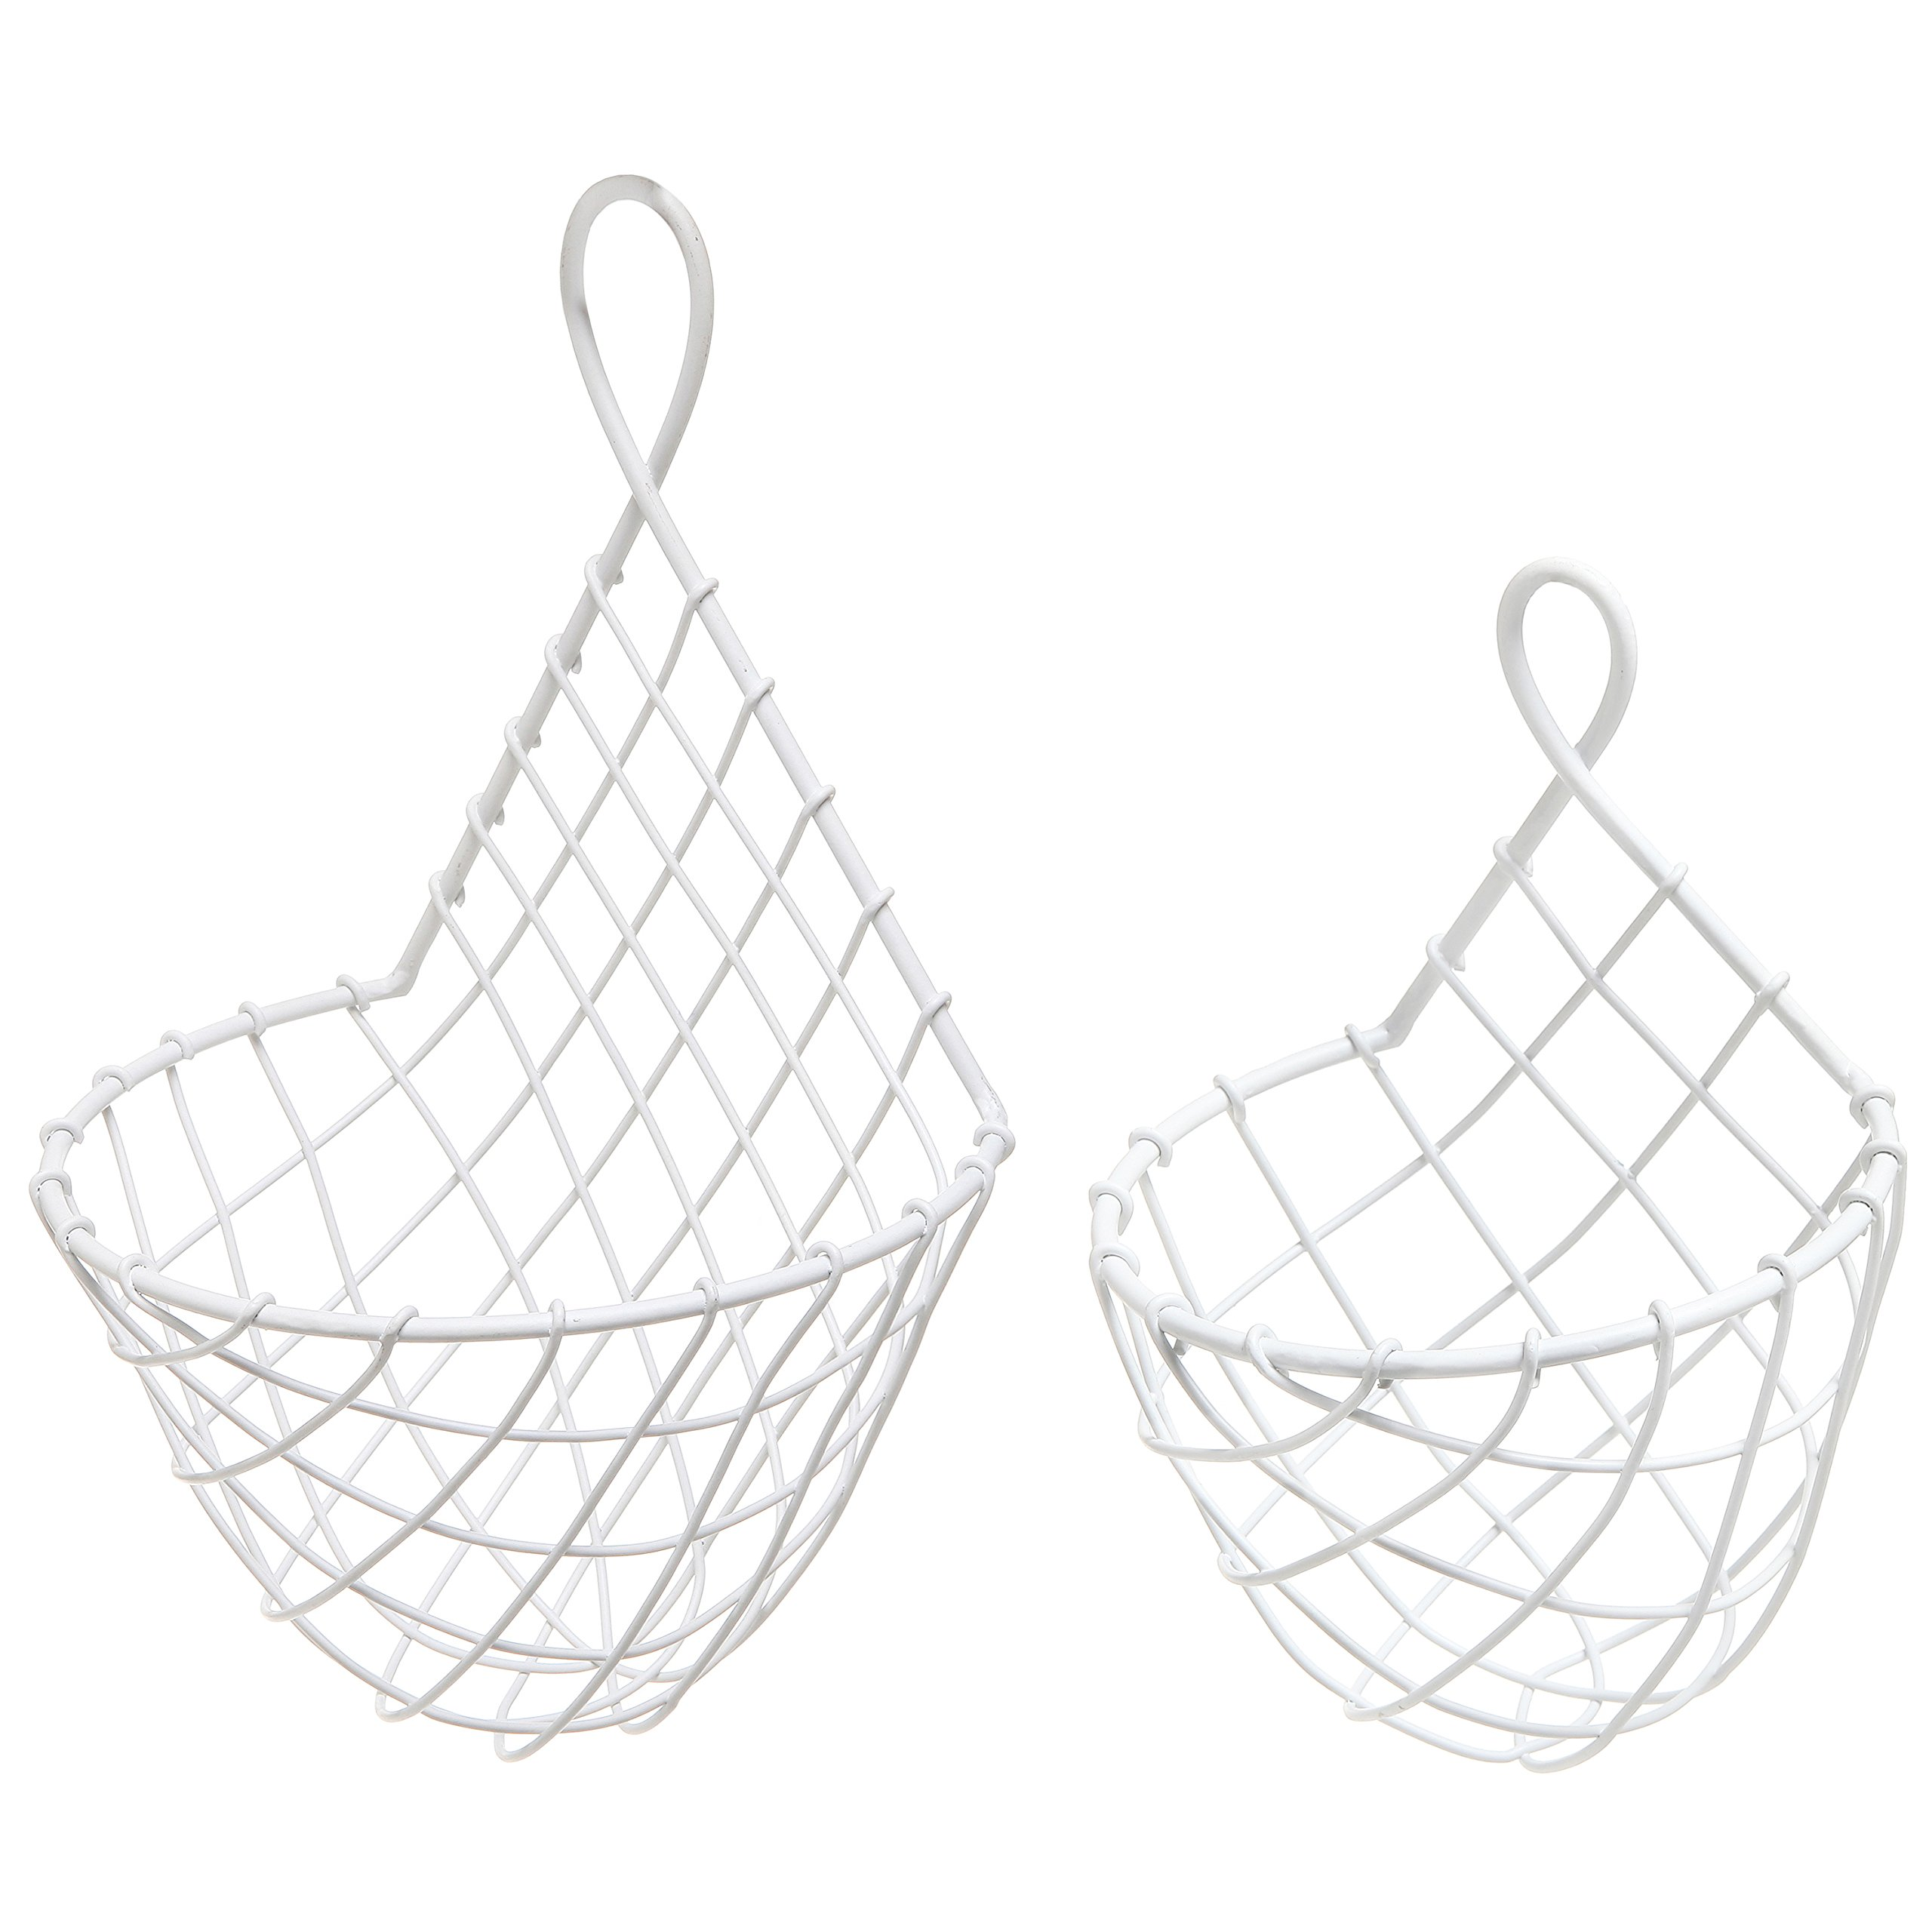 (Set of 2) Wall Mounted White Woven Metal Wire Hanging Fruit & Produce Holder / Flower & Plant Baskets